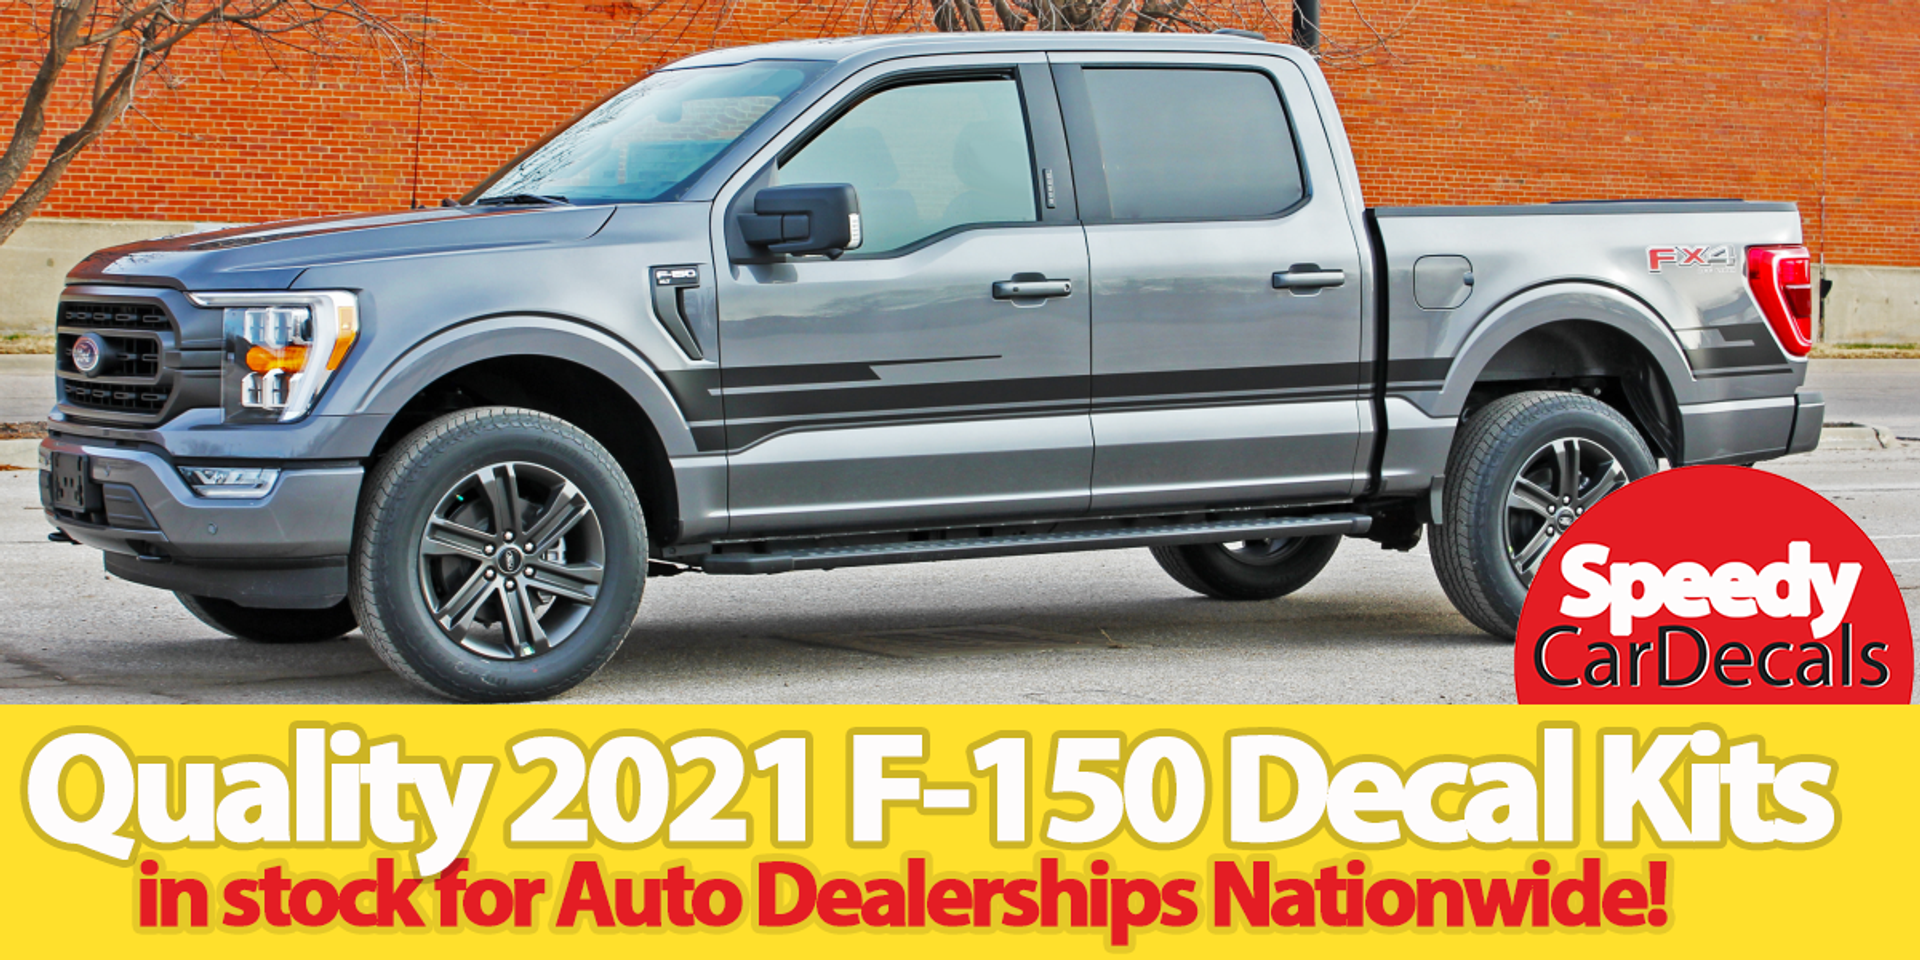 Quality 2021 F-150 Decals, Stripes, Graphic Kits